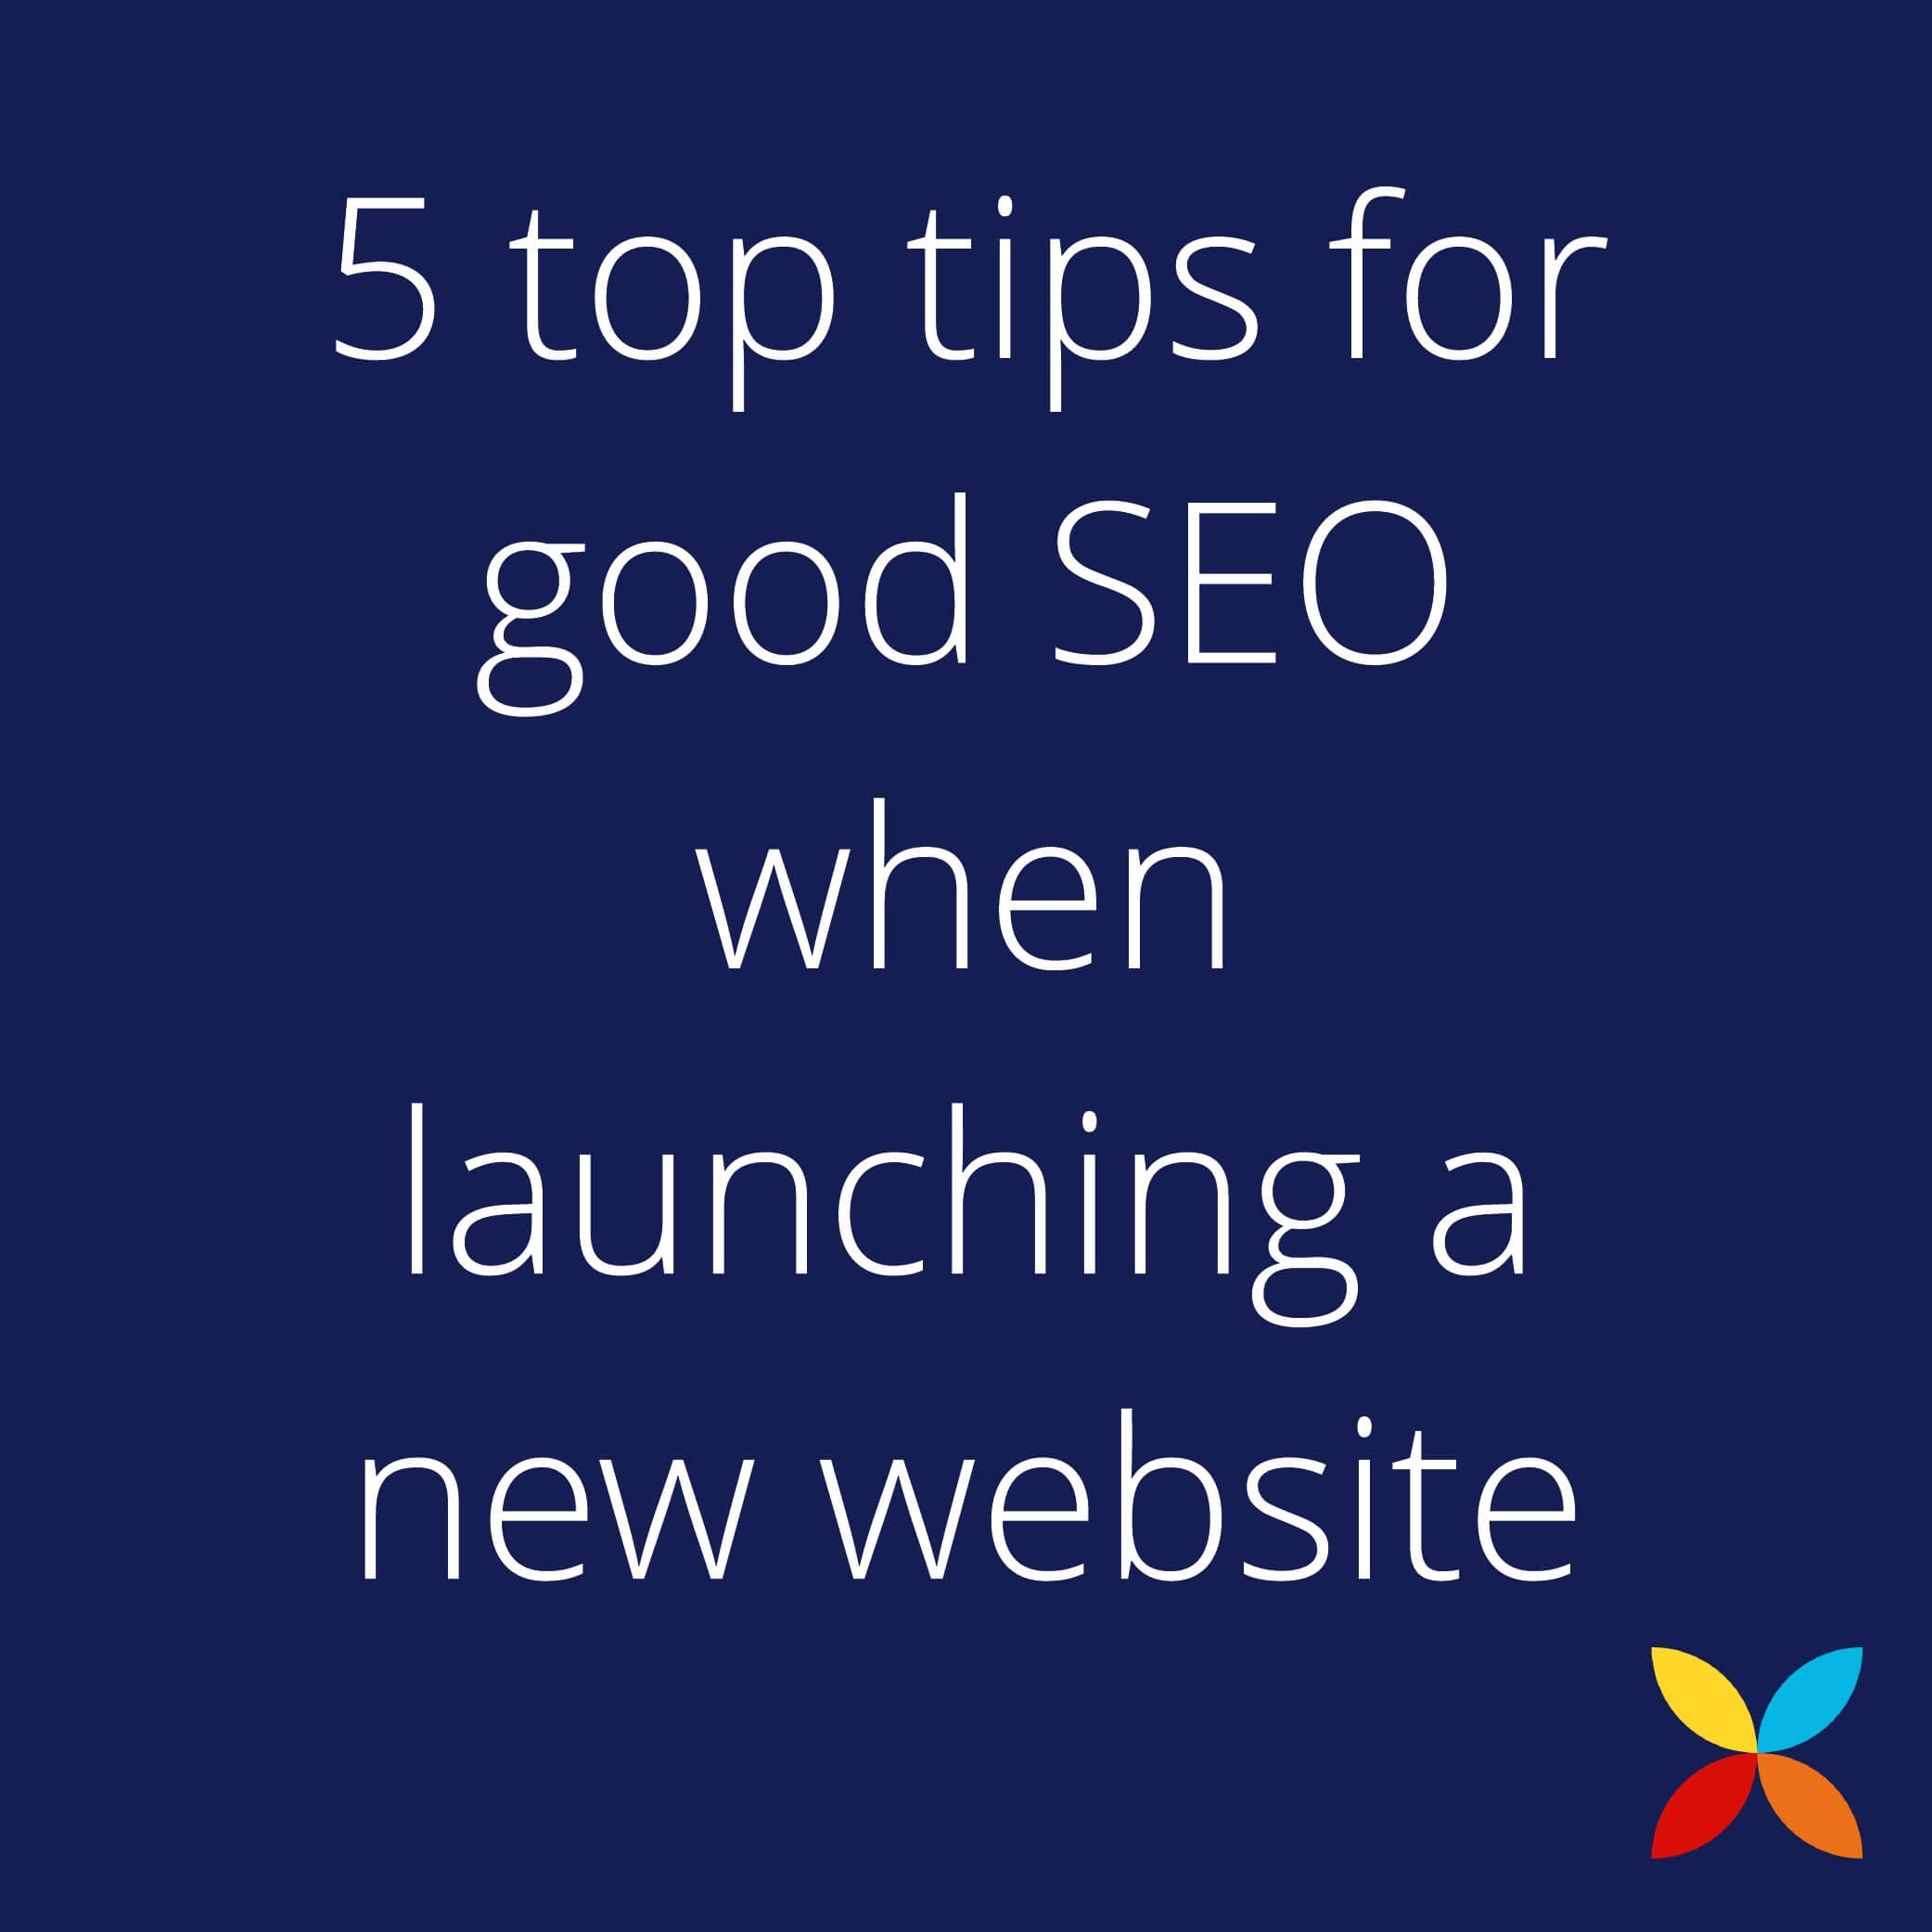 5 top tips for good SEO when launching a new website